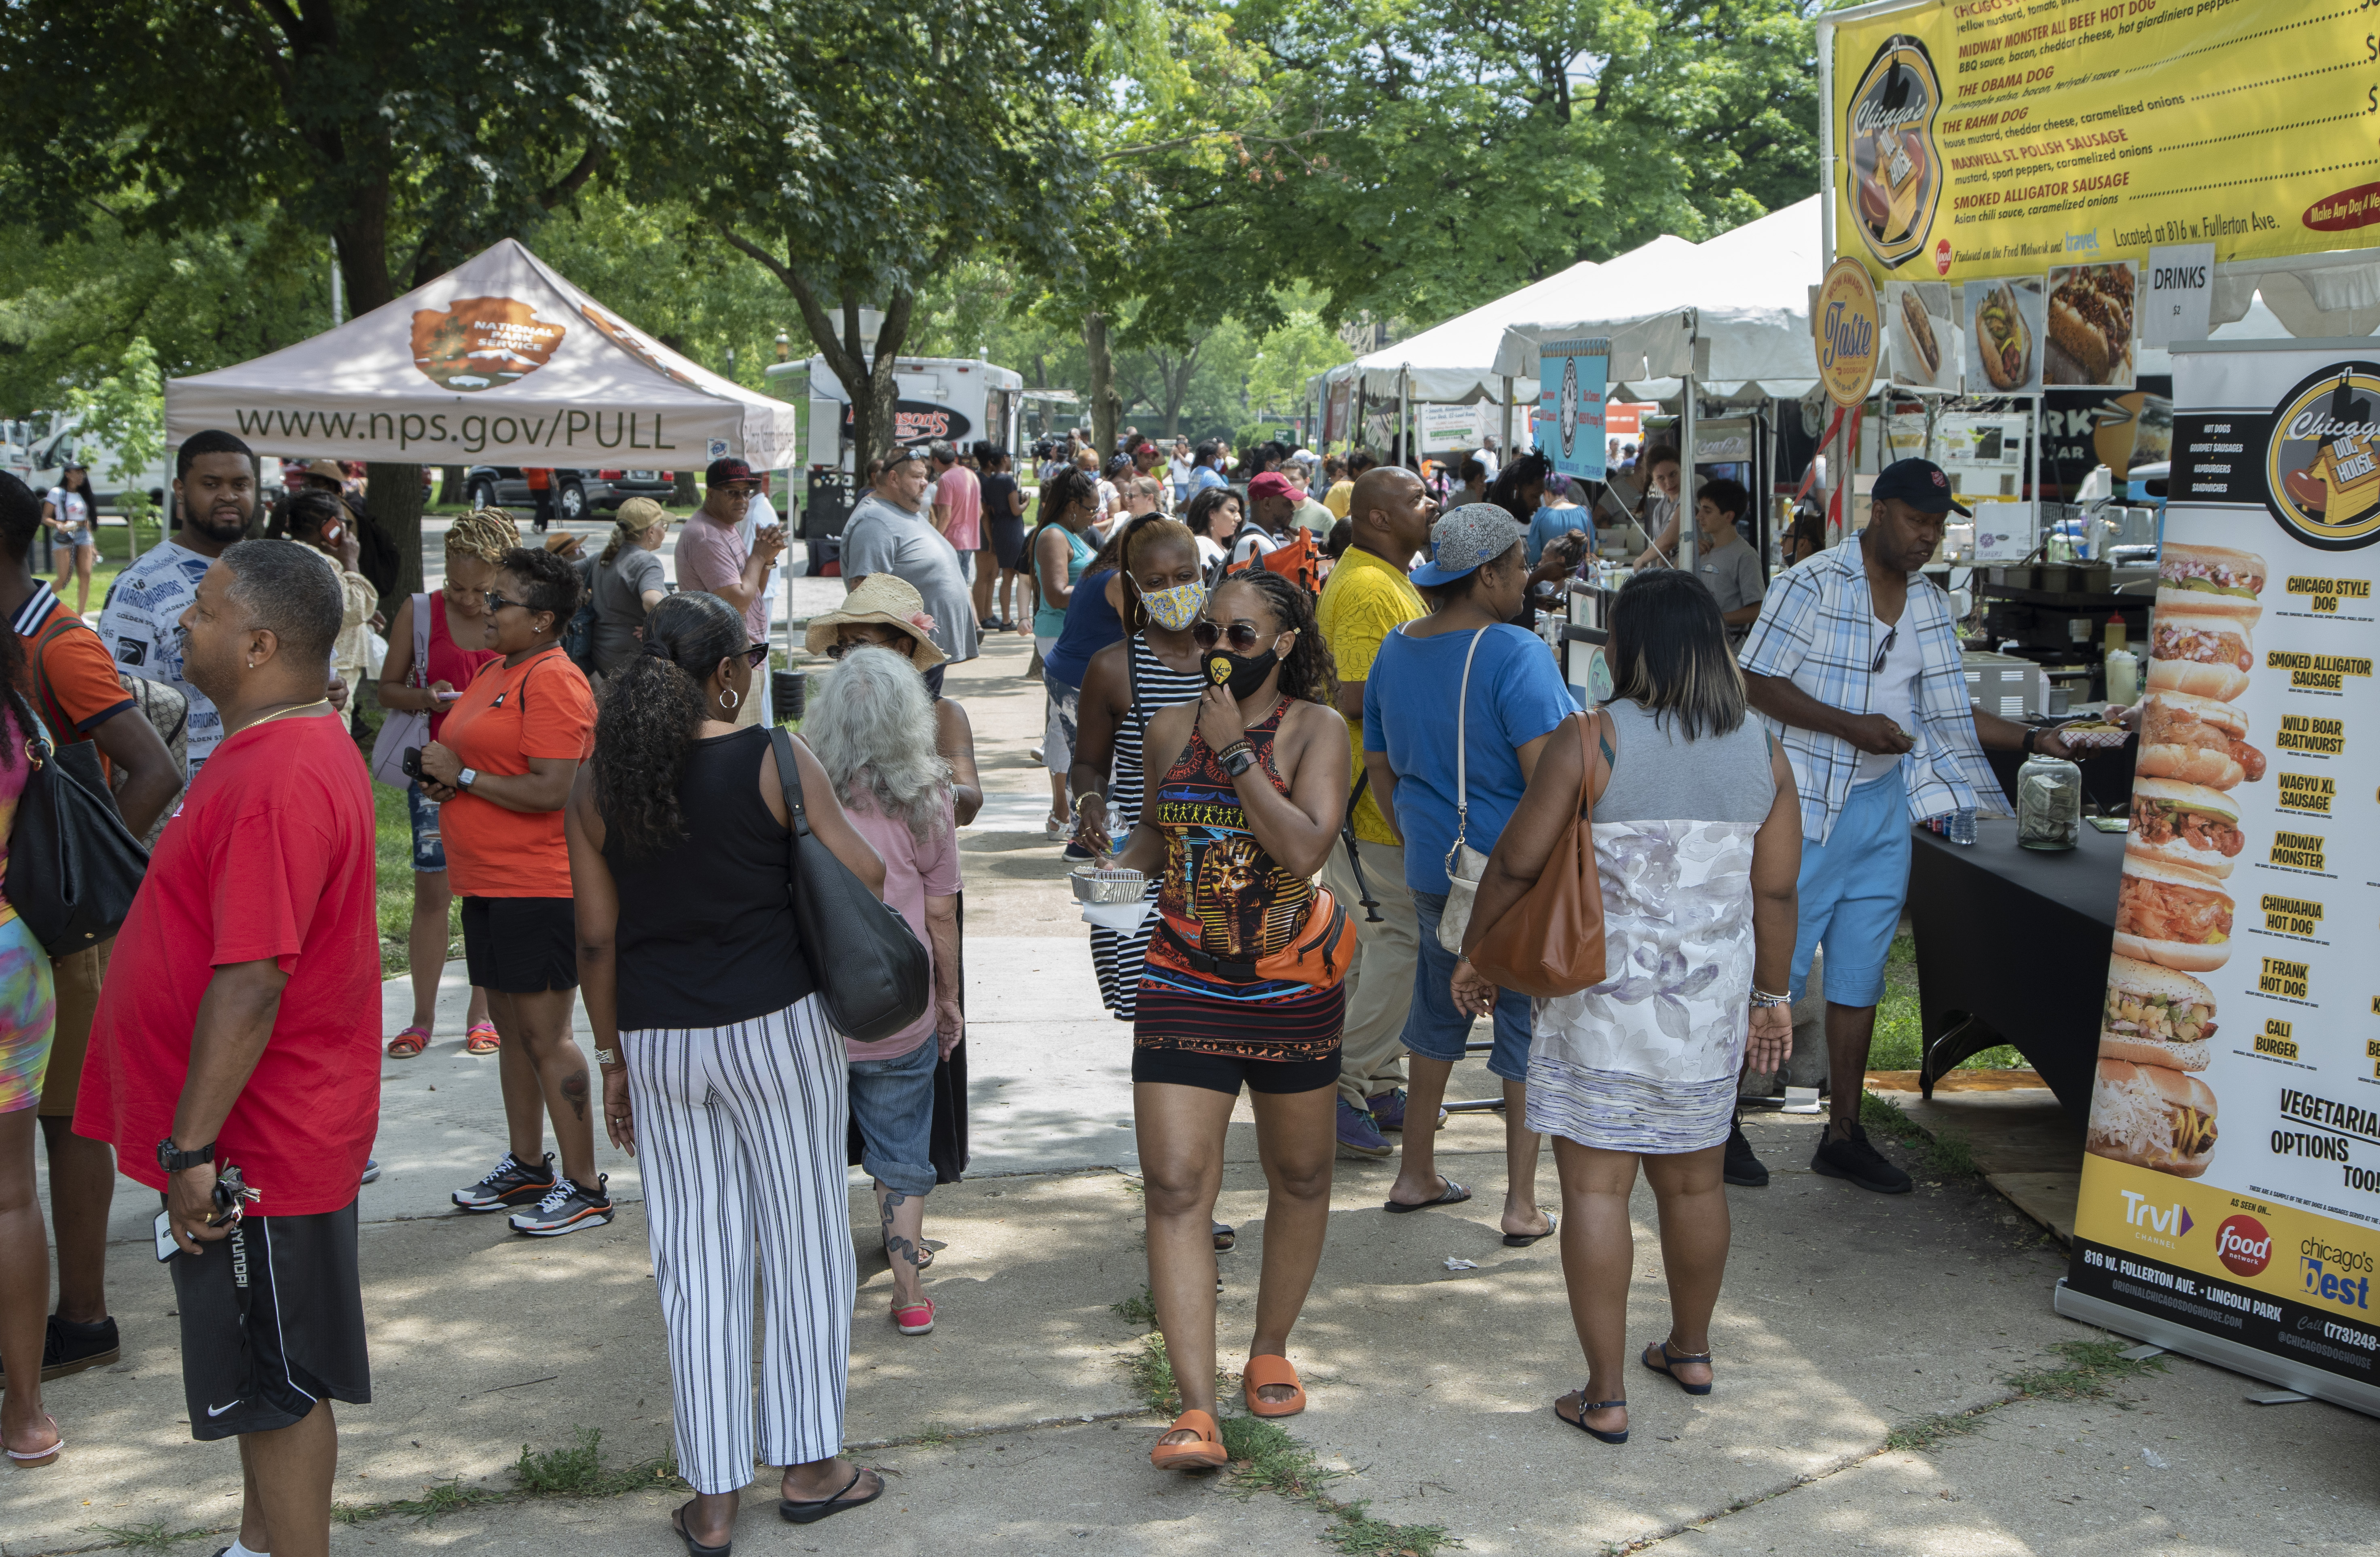 Taste of Chicago To-Go, a scaled down, roaming pop-up food festival, kicked off in Pullman on Wednesday. It replaces the massive Taste of Chicago in Grant Park, which was canceled for the second year due to the pandemic.